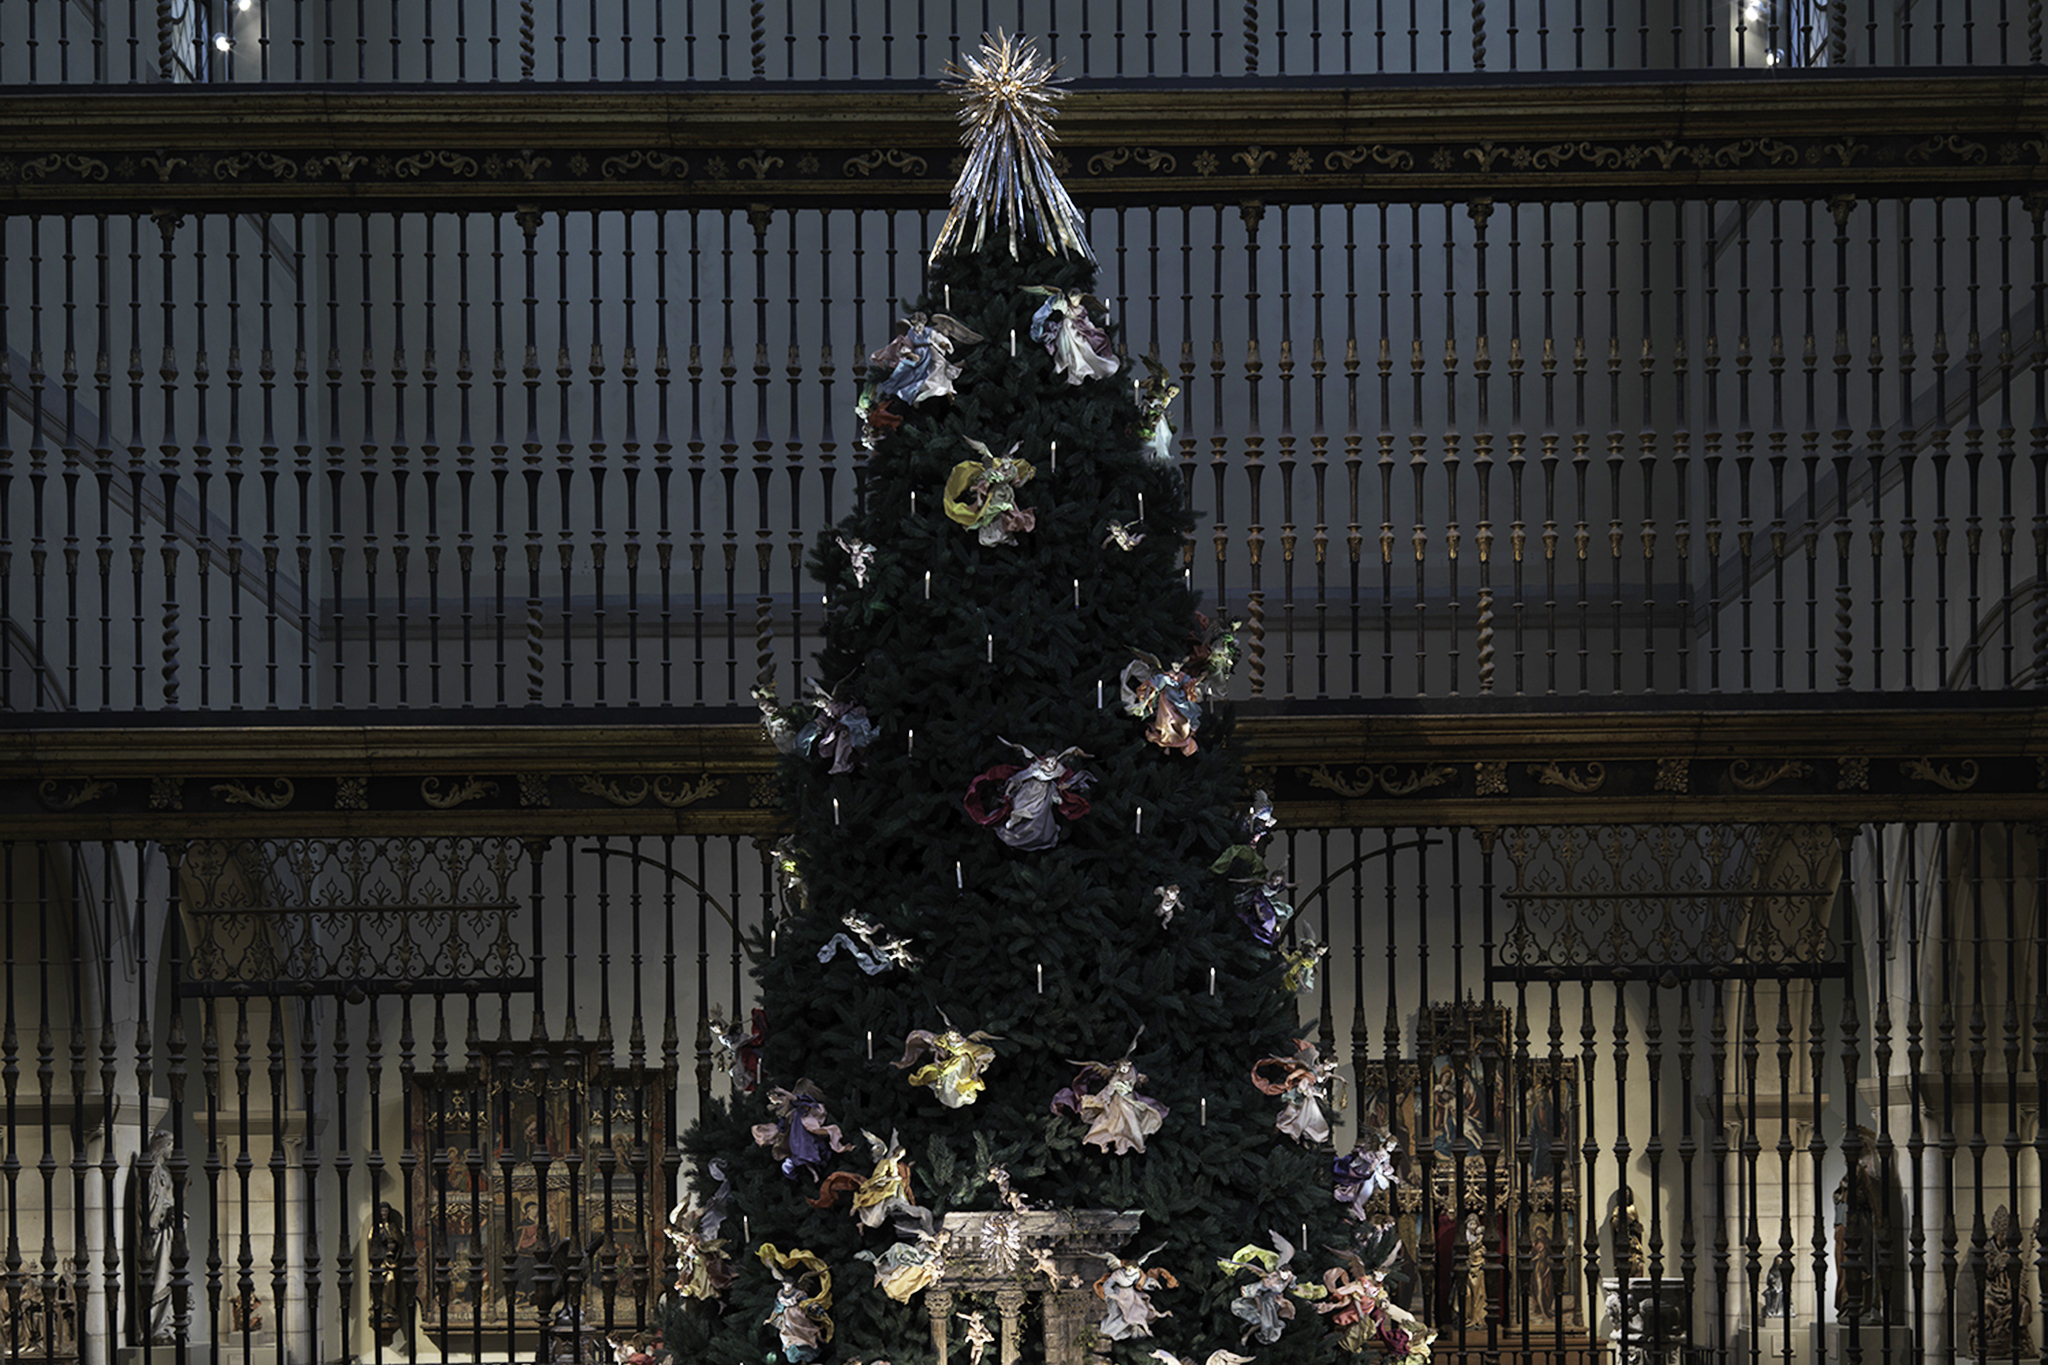 Metropolitan Museum Christmas Tree and Neapolitan Baroque Crèche